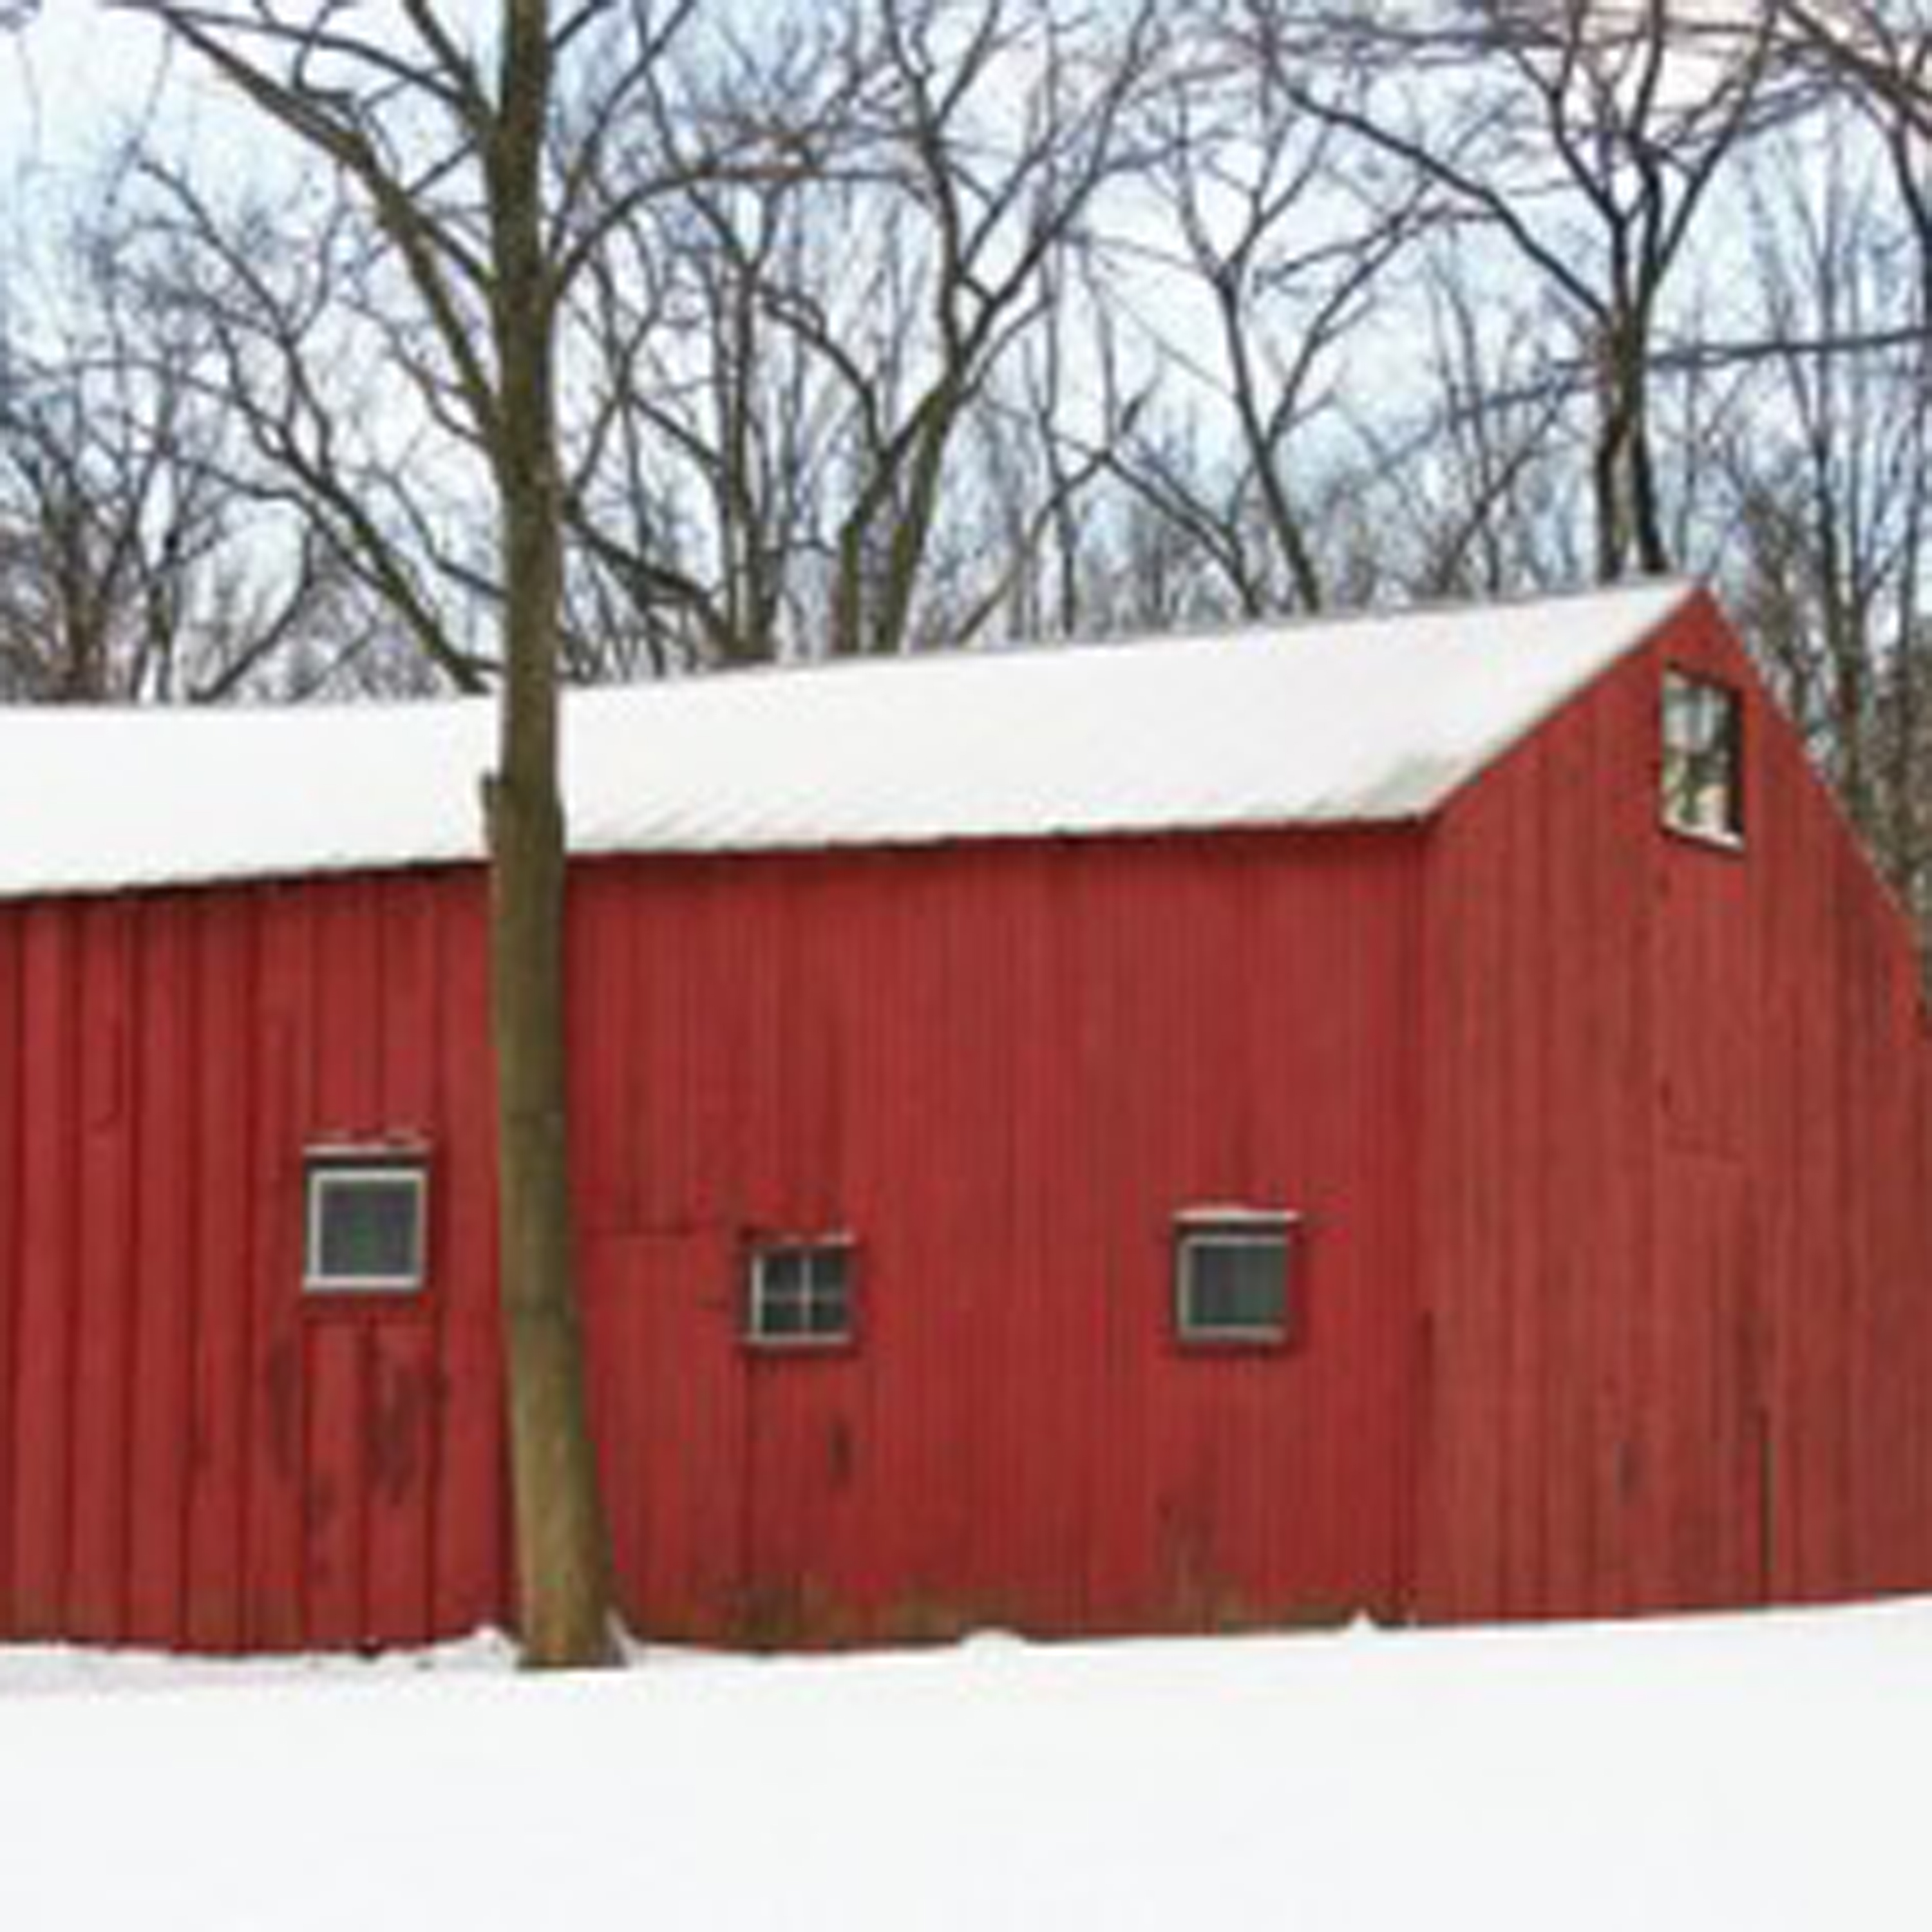 Hidden Winter Threat Continues to Take Lives: Barn Fires